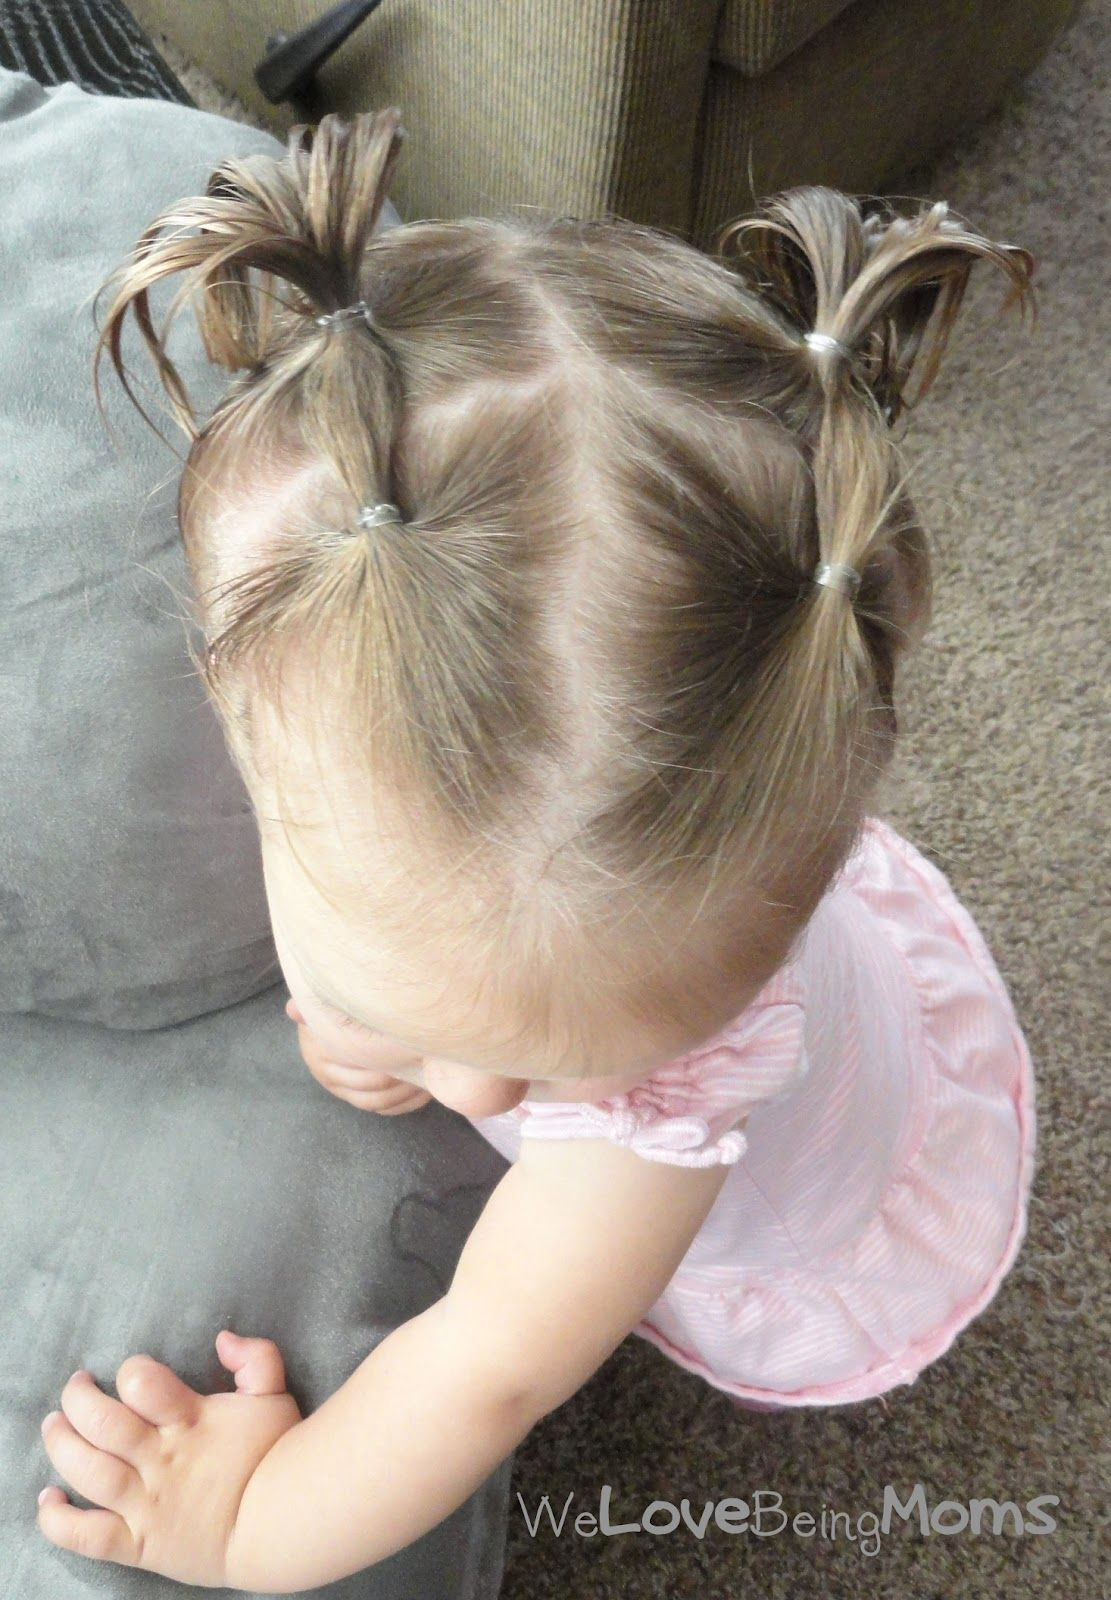 We love being moms toddler hairstyles things to wear pinterest